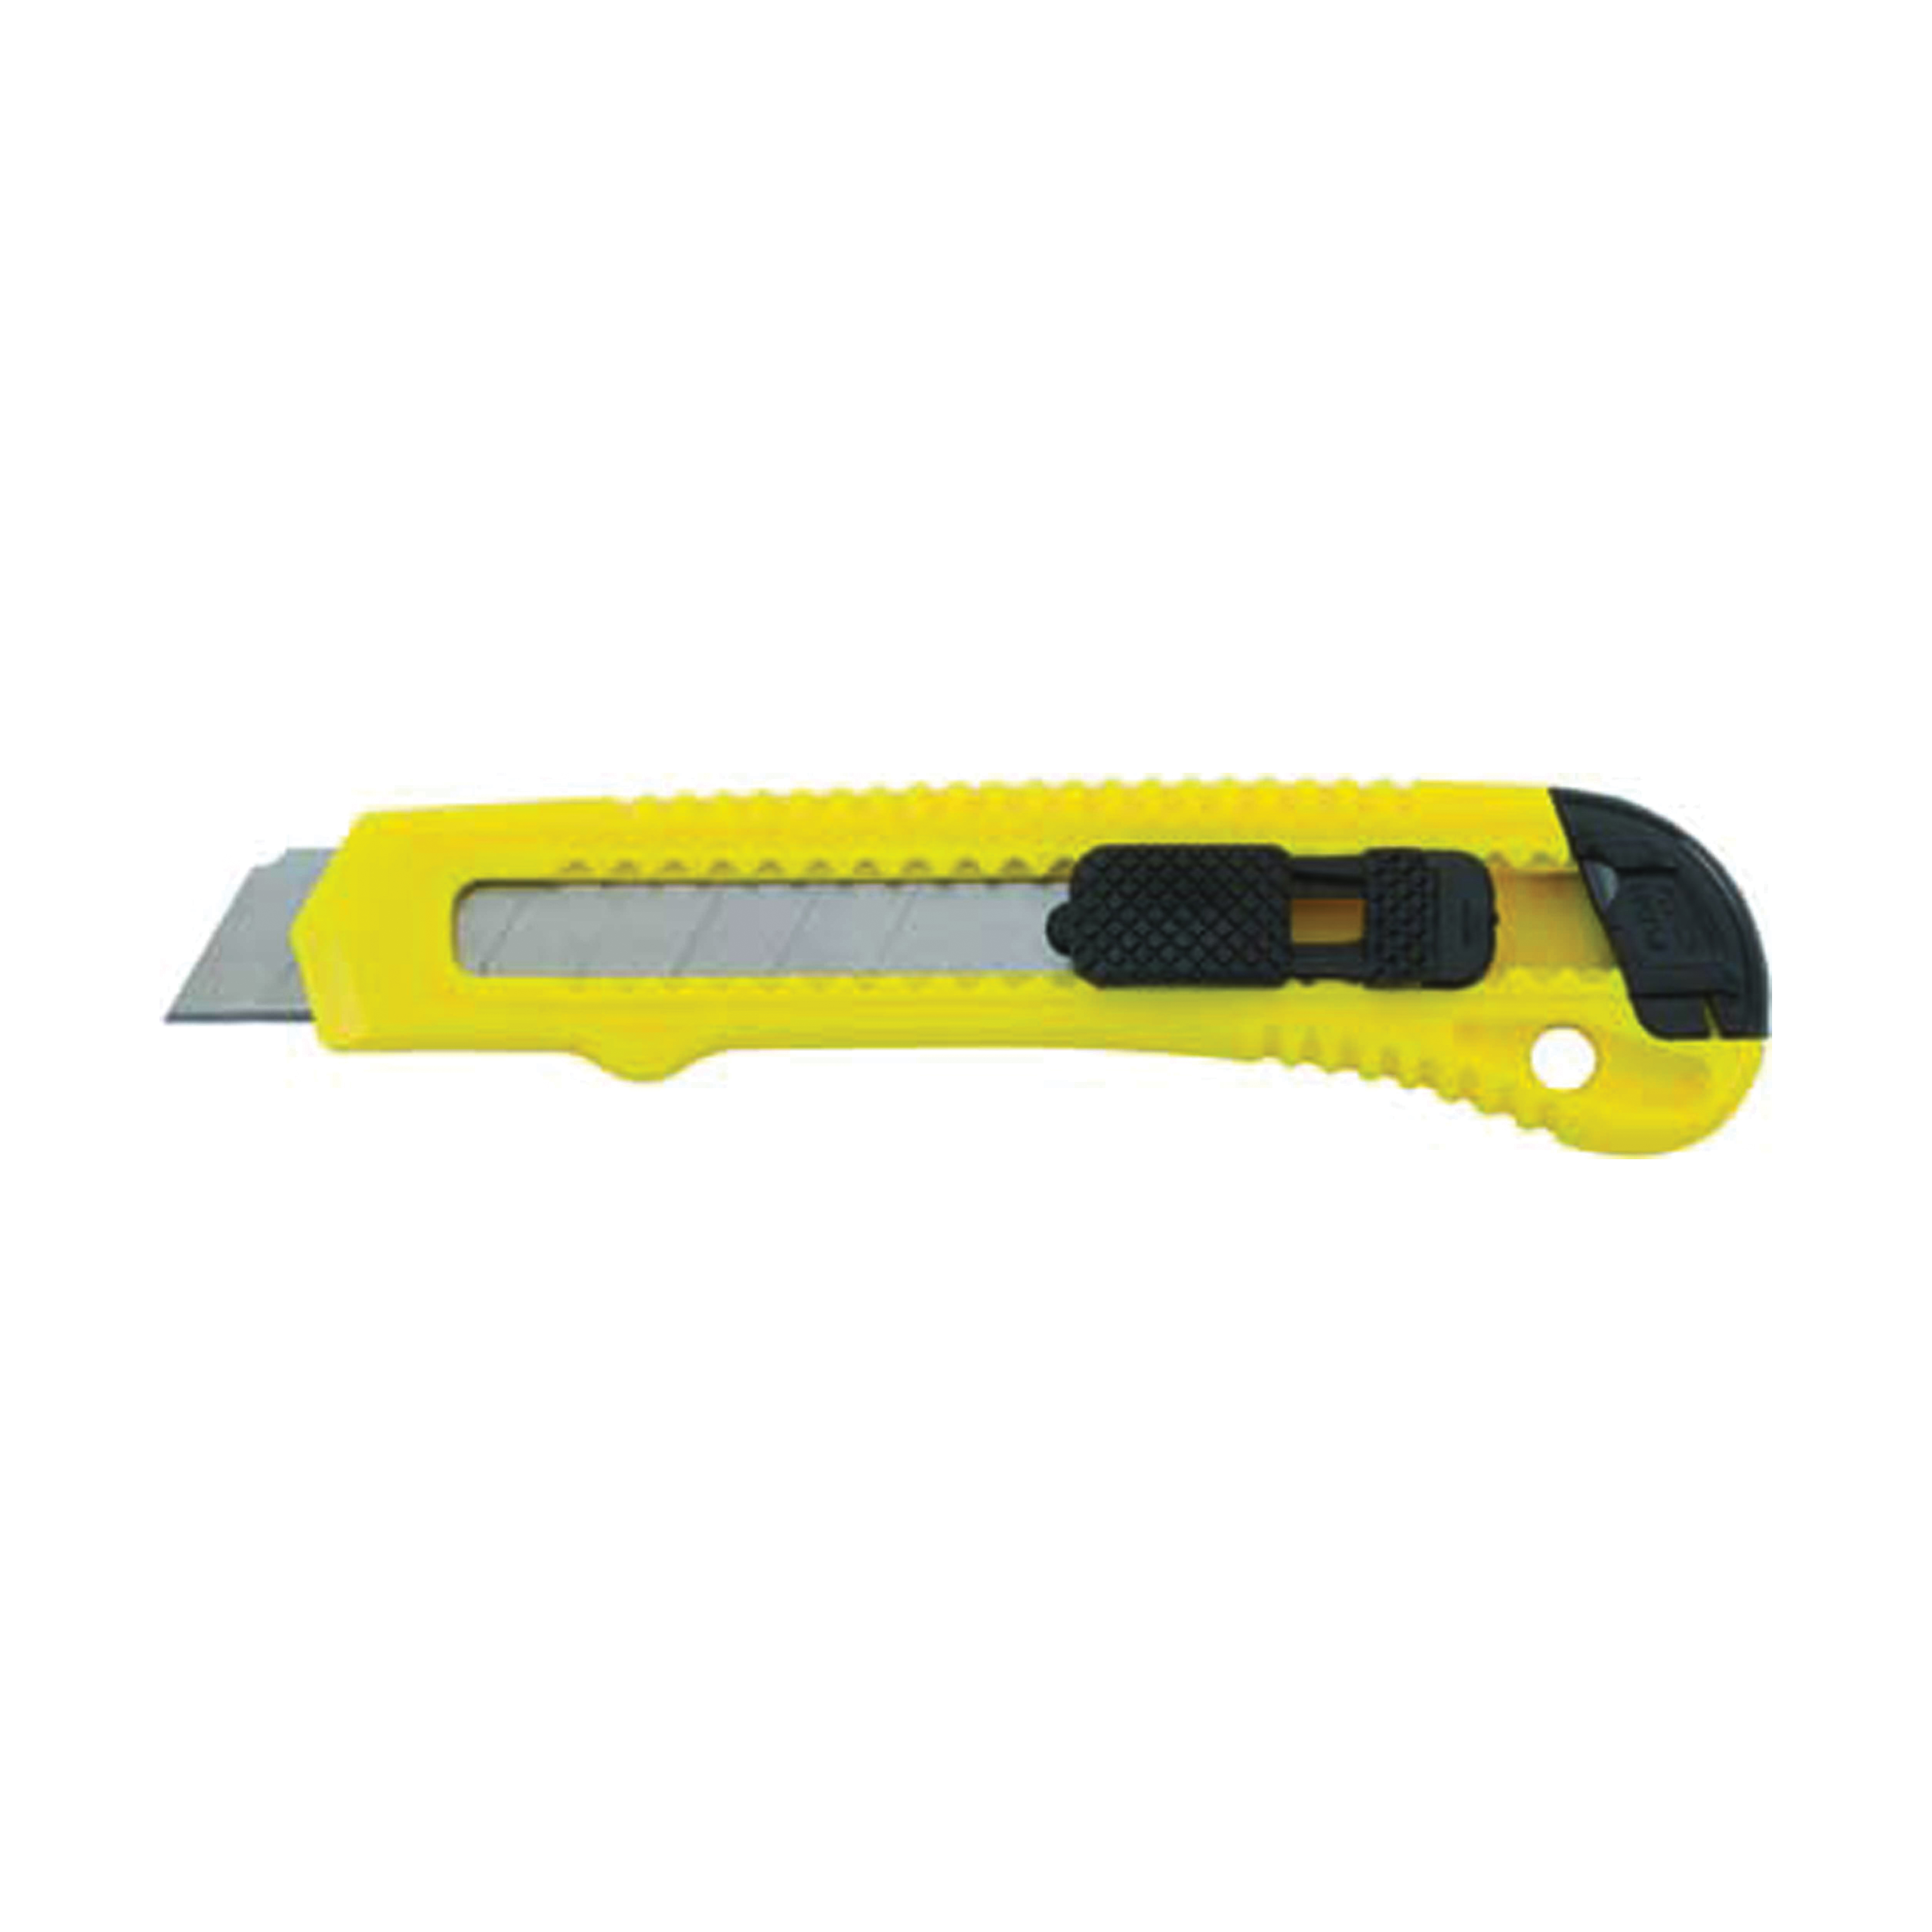 Stanley® Quick-Point™ 10-143P Light Duty Utility Knife, 18 mm W Retractable/Single Edge/Snap-Off Blade, 1 Blade Included, Carbon Steel Blade, 18 mm OAL